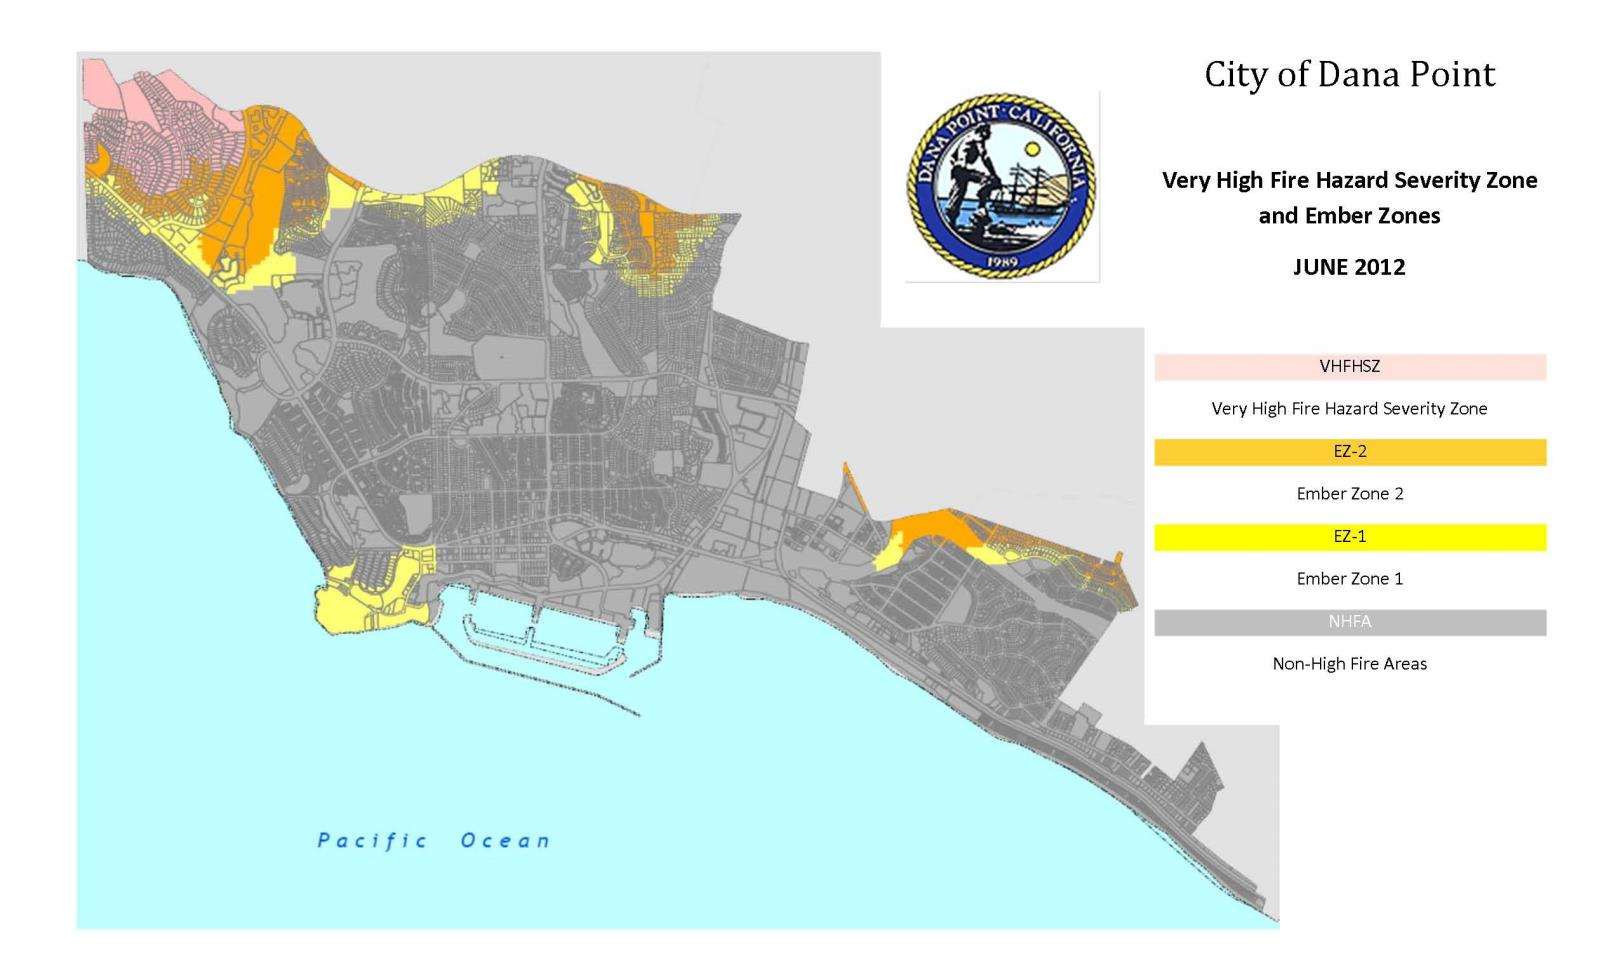 fire hazard severity zones | city of dana point